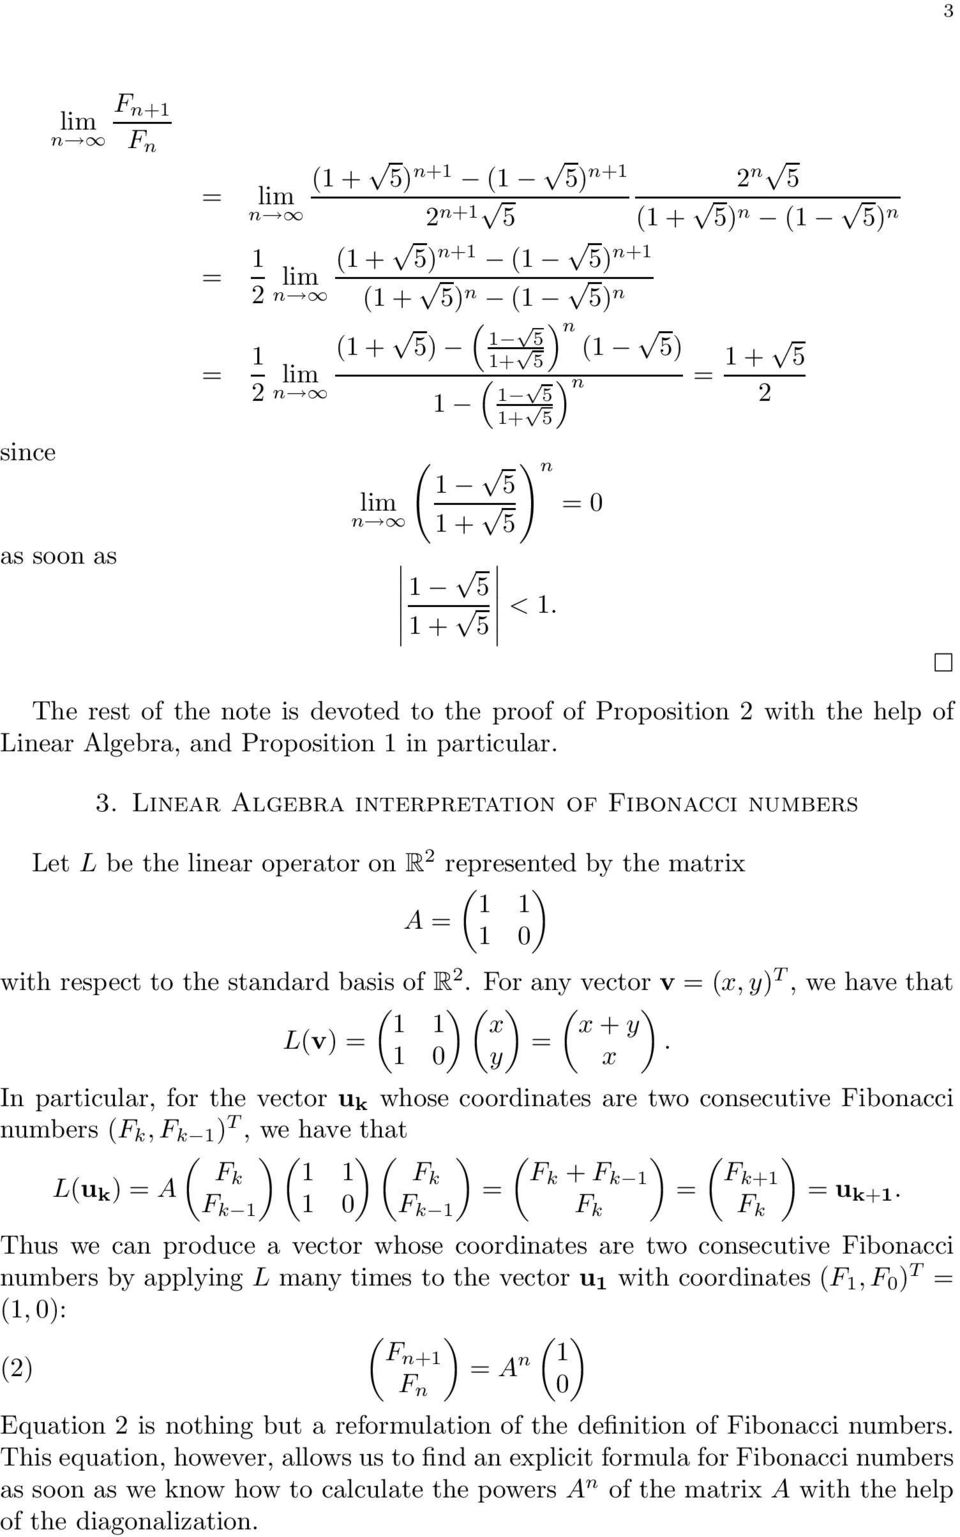 Liear Algebra iterpretatio of Fiboacci umbers Let L be the liear operator o R represeted by the matrix A 0 with respect to the stadard basis of R. For ay vector v x, y) T, we have that x x + y Lv).